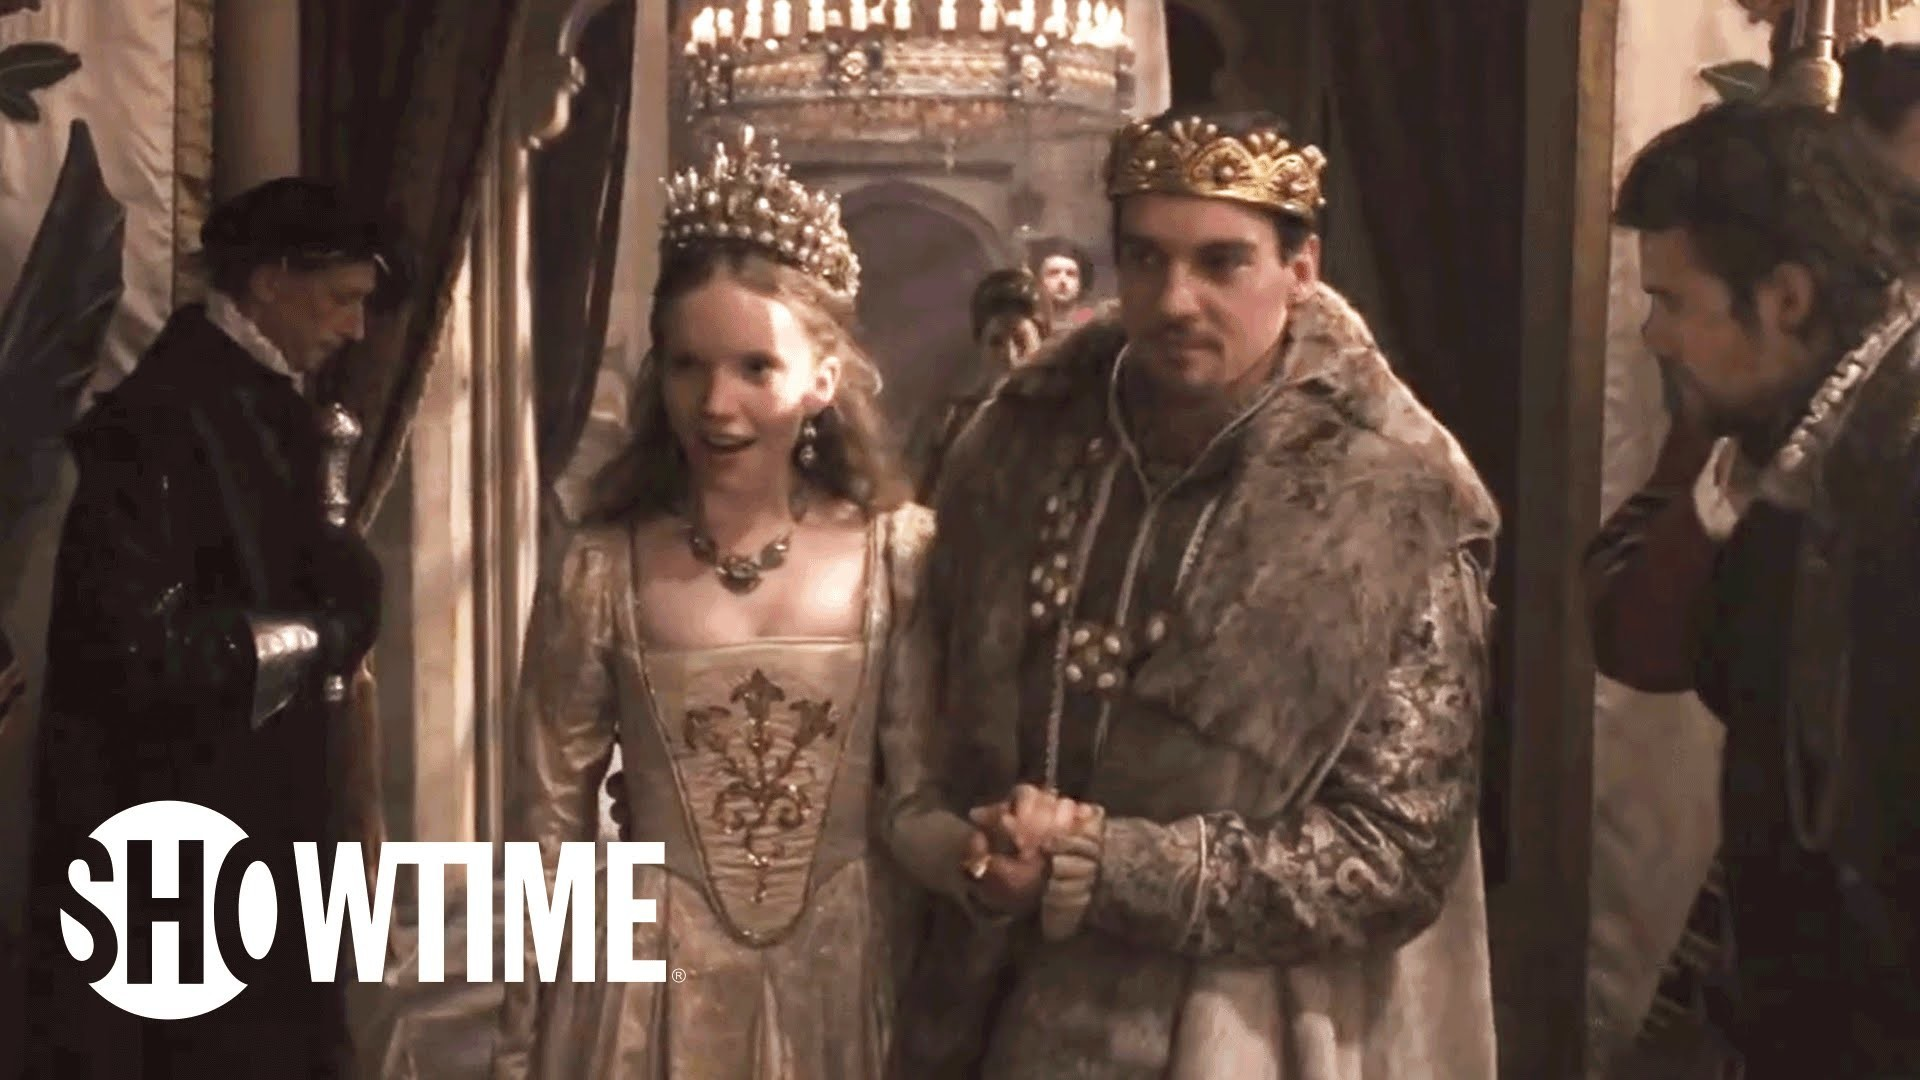 1920x1080  The Tudors Season 4 (2010) | Official Trailer | Jonathan Rhys  Meyers & Henry Cavill SHOWTIME Series - YouTube